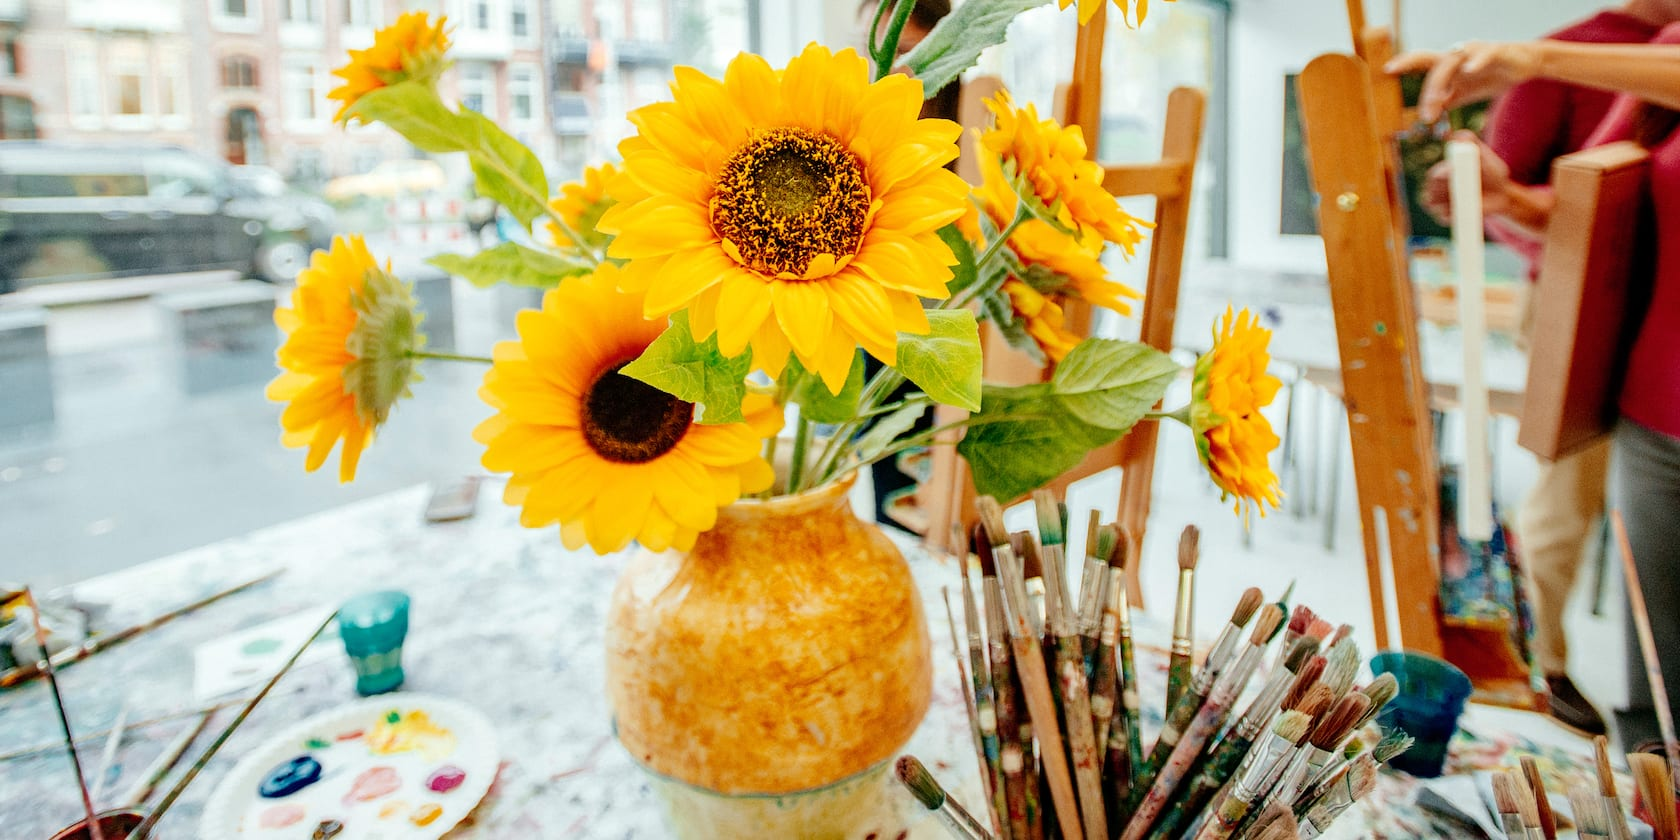 A vase filled with beautiful sunflowers sits on a table near a cup full of paint brushes, paints and other art supplies